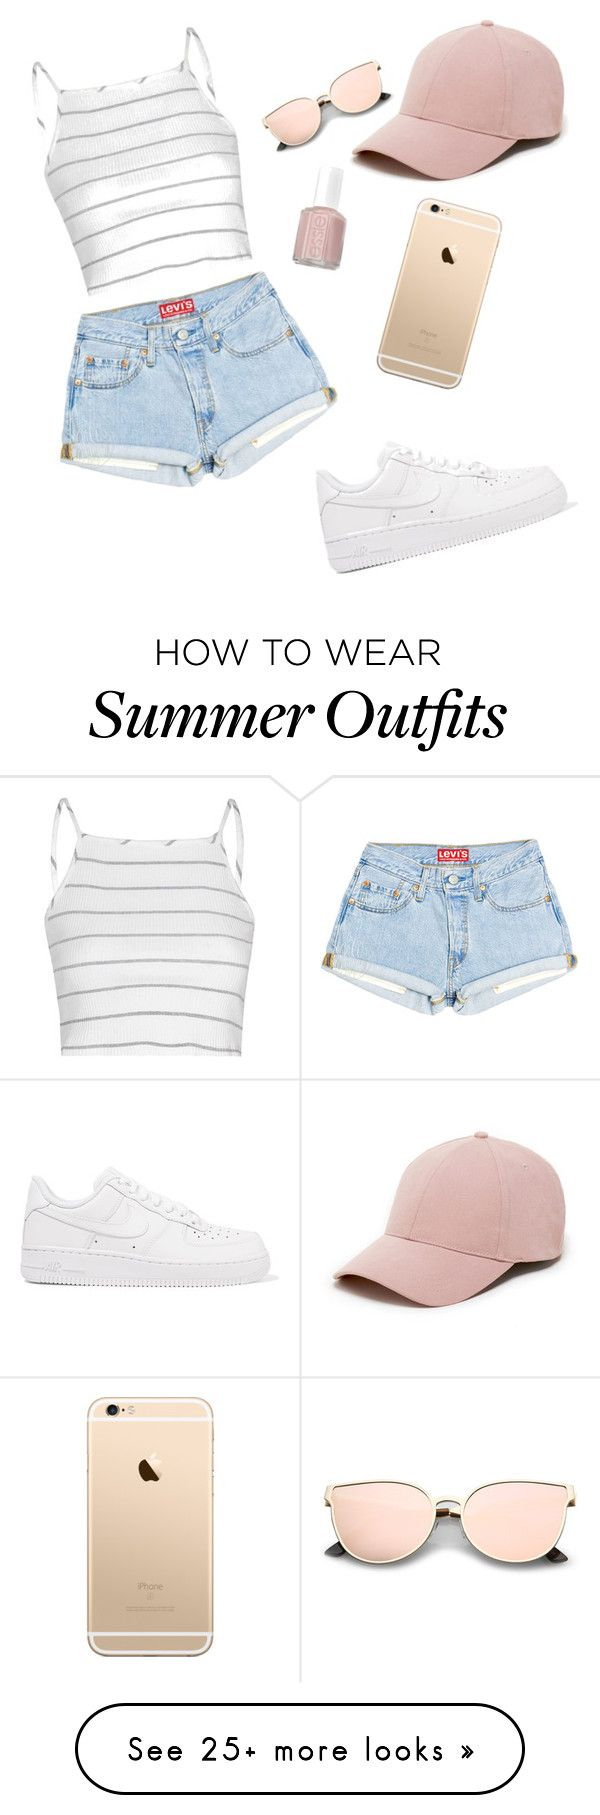 """Simple summer outfit!"" by hannahalund on Polyvore featuring Glamorous, NIKE, Sole Society and Essie"